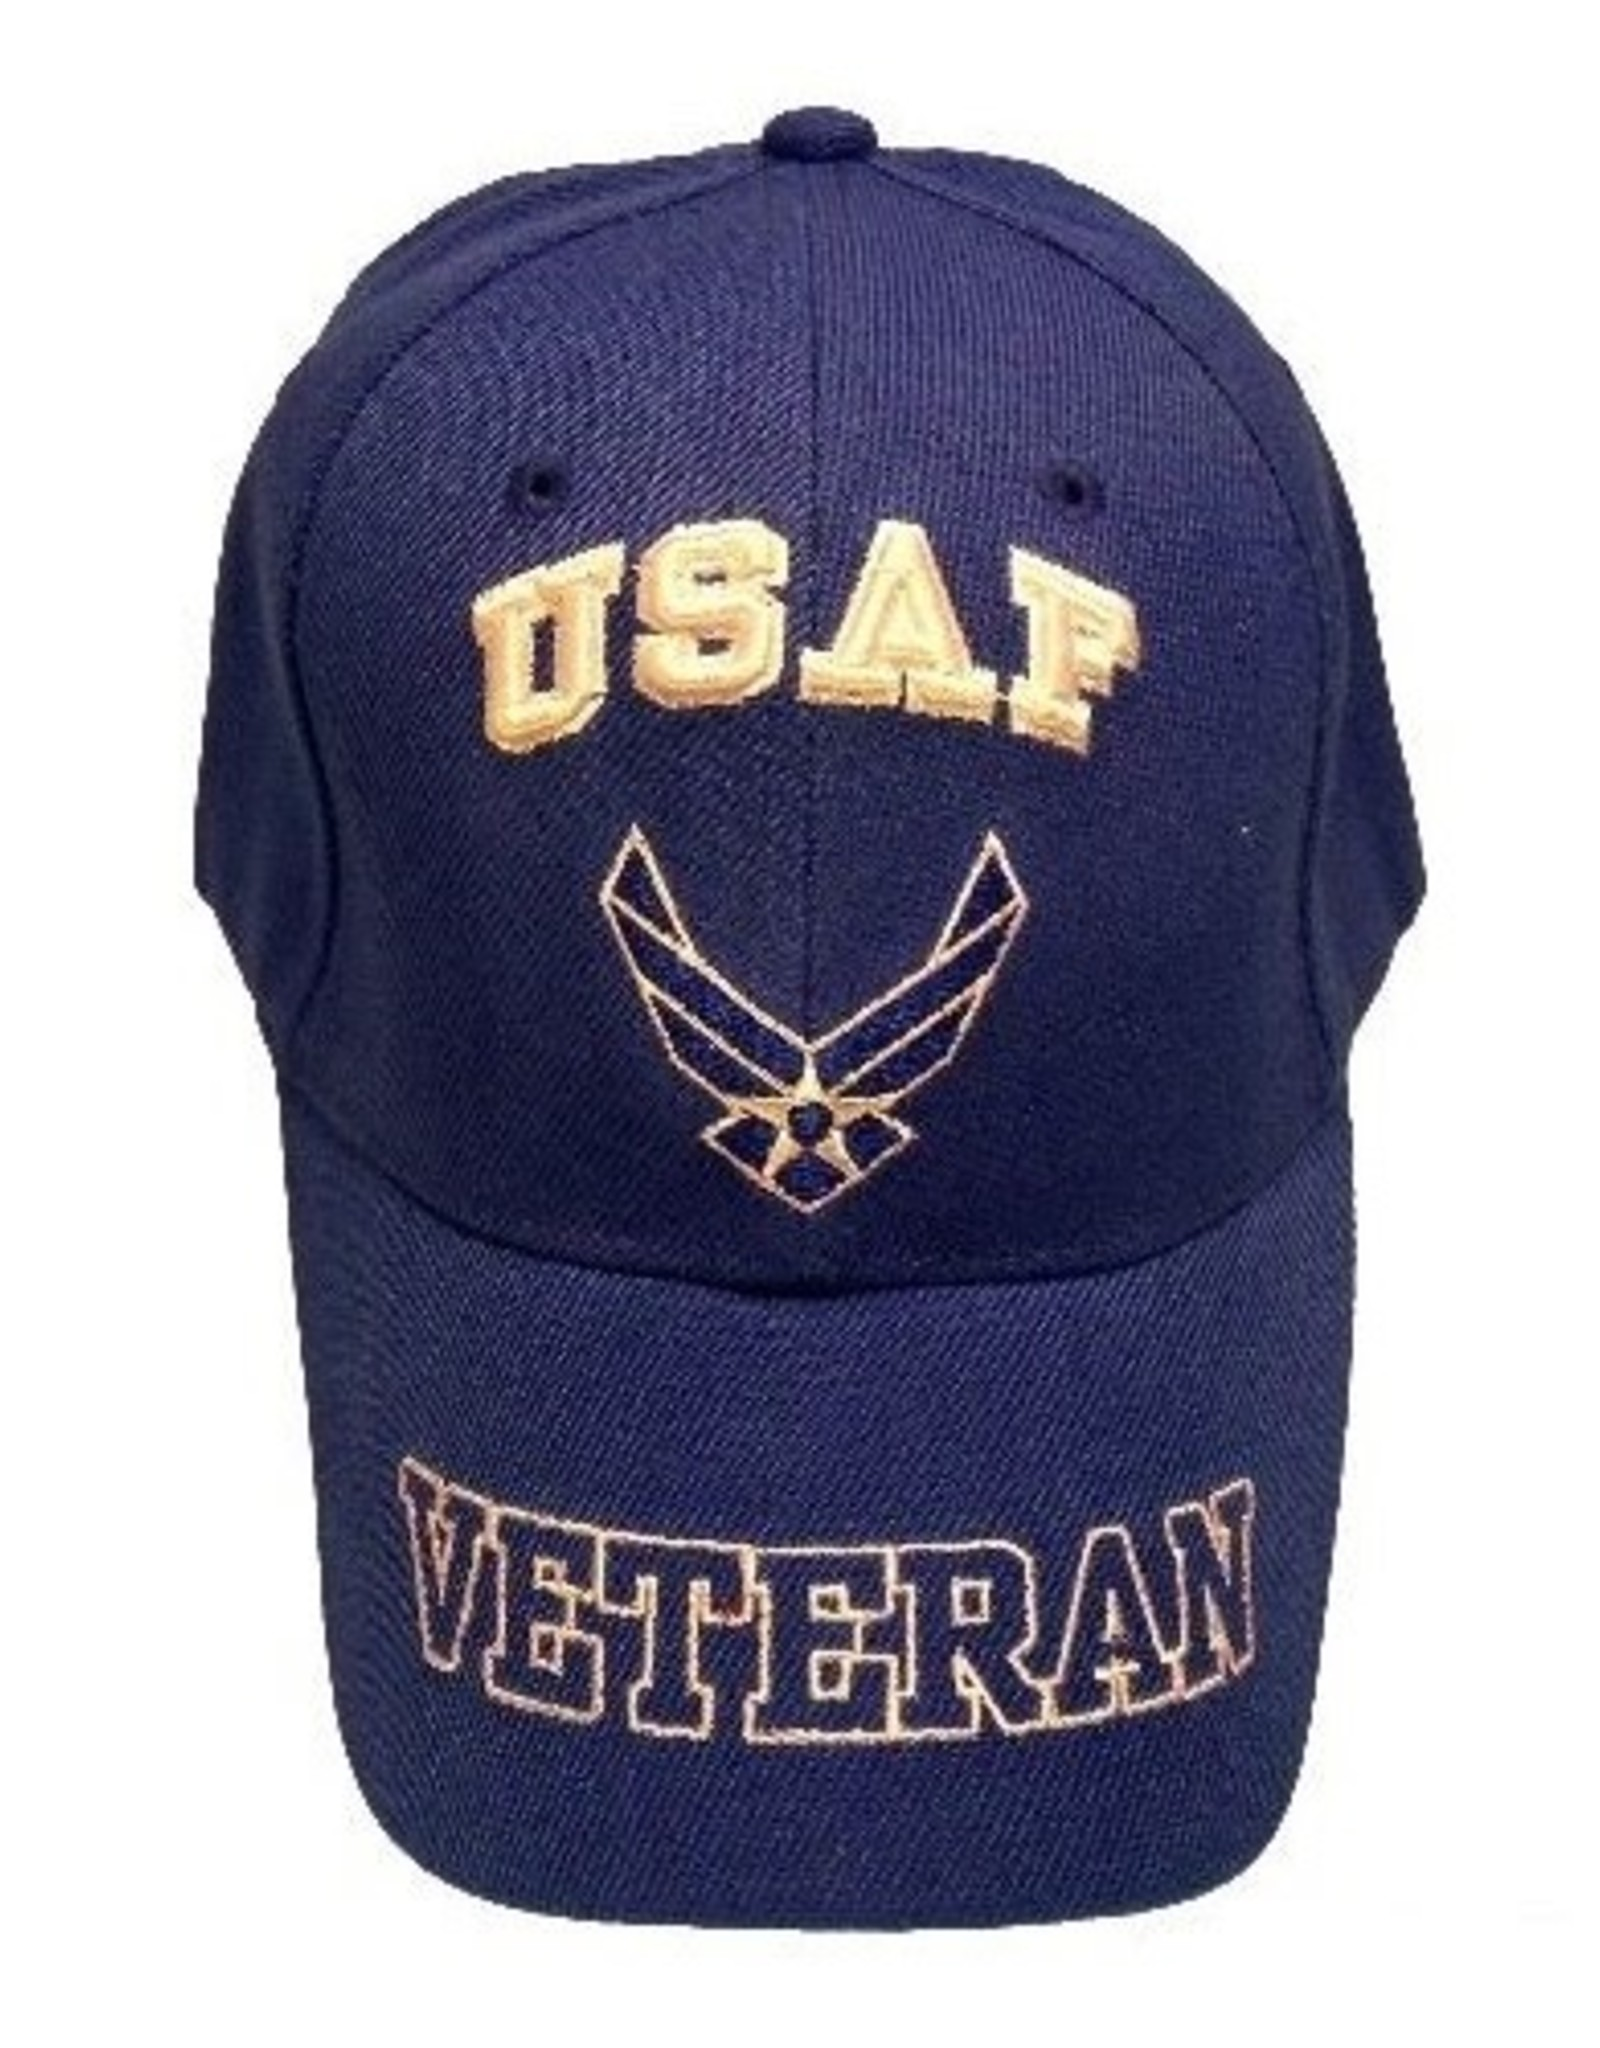 MidMil Air Force Veteran Hat with Wing Emblem and Veteran Outline on Bill Royal